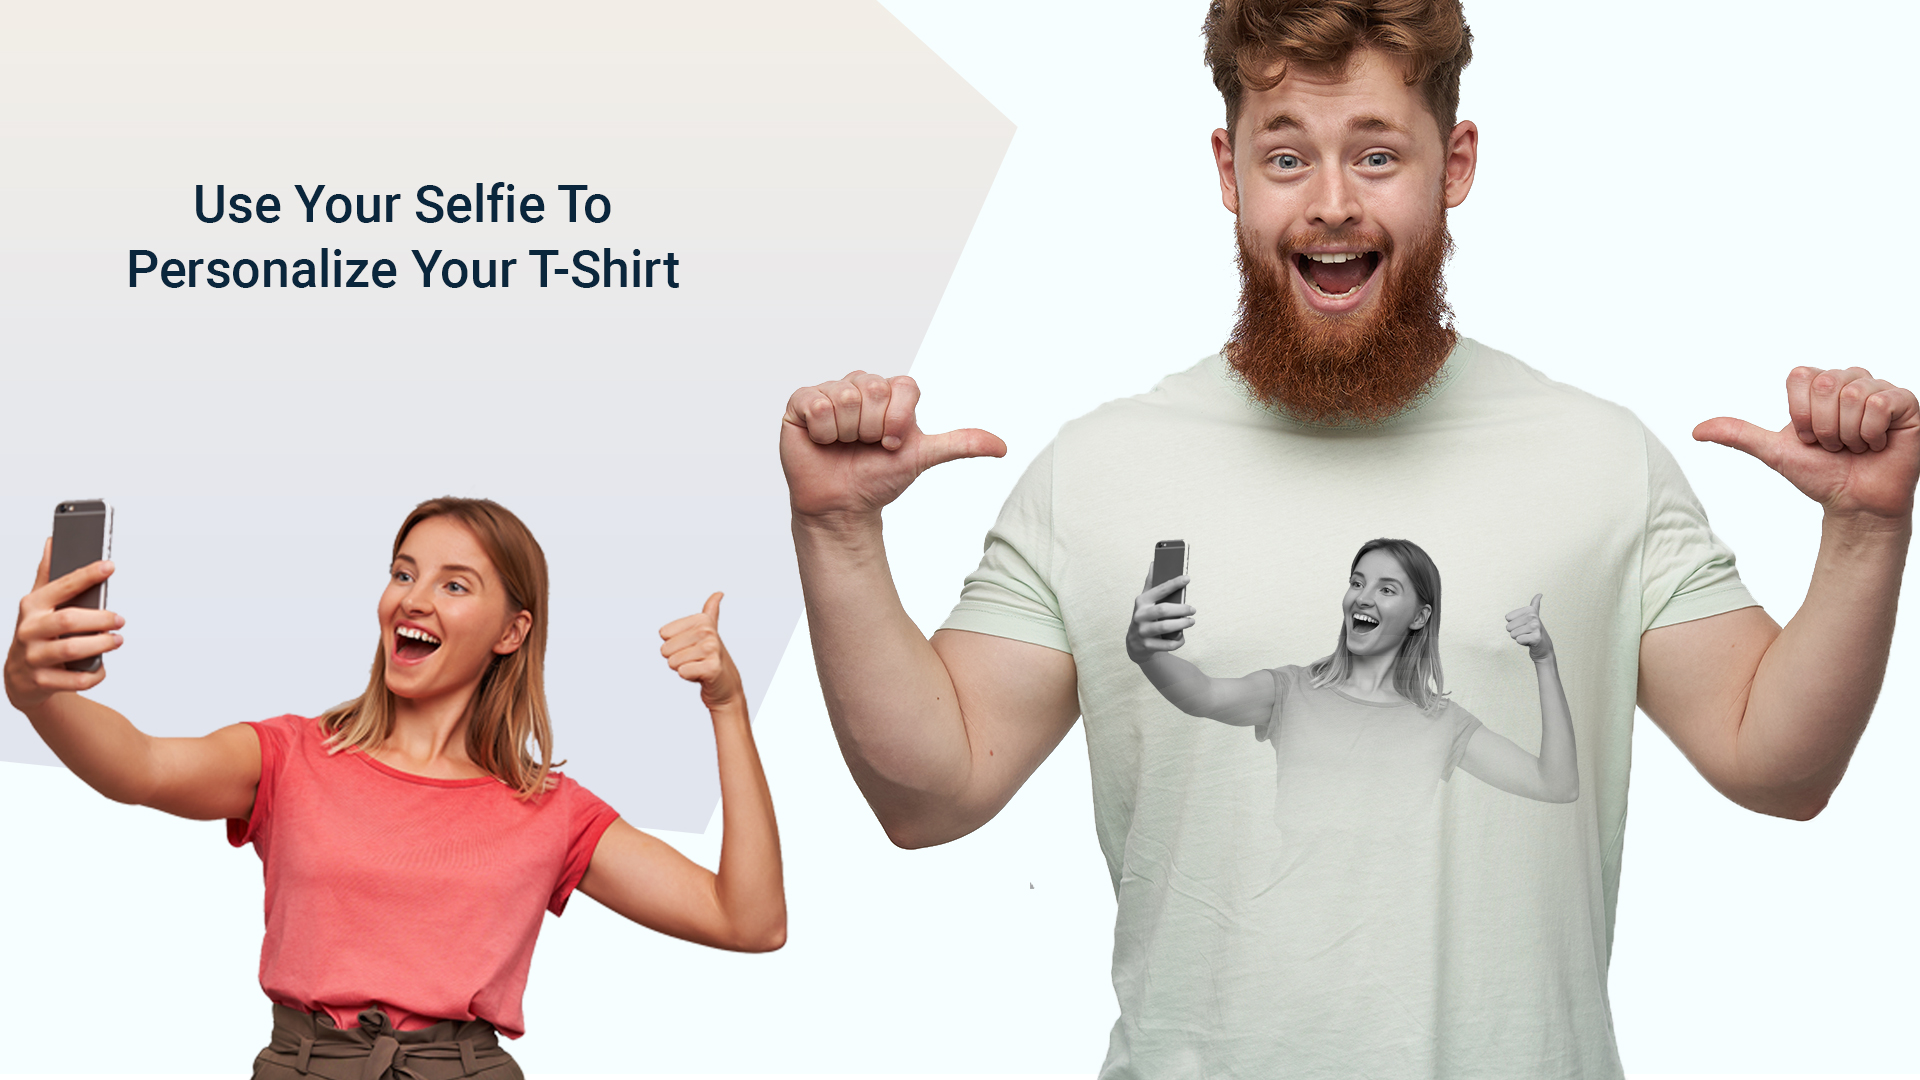 Use Your Selfie to Personalize Your T-shirt